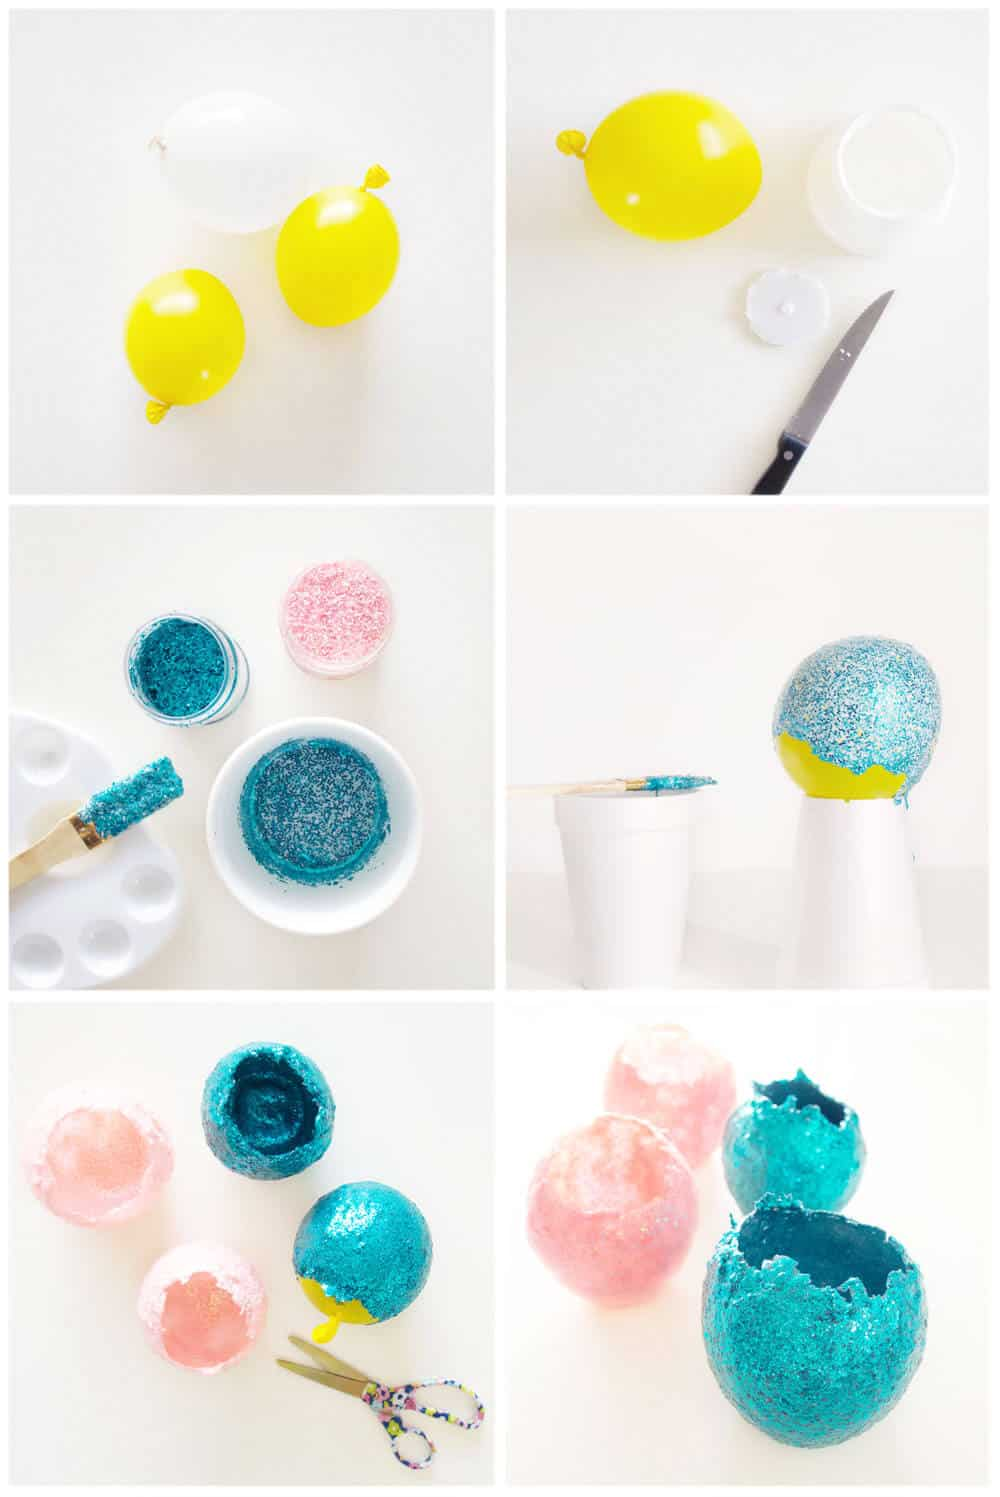 Mini Glitter Bowls – bring a little modern sparkle into your home with this easy and elegant DIY